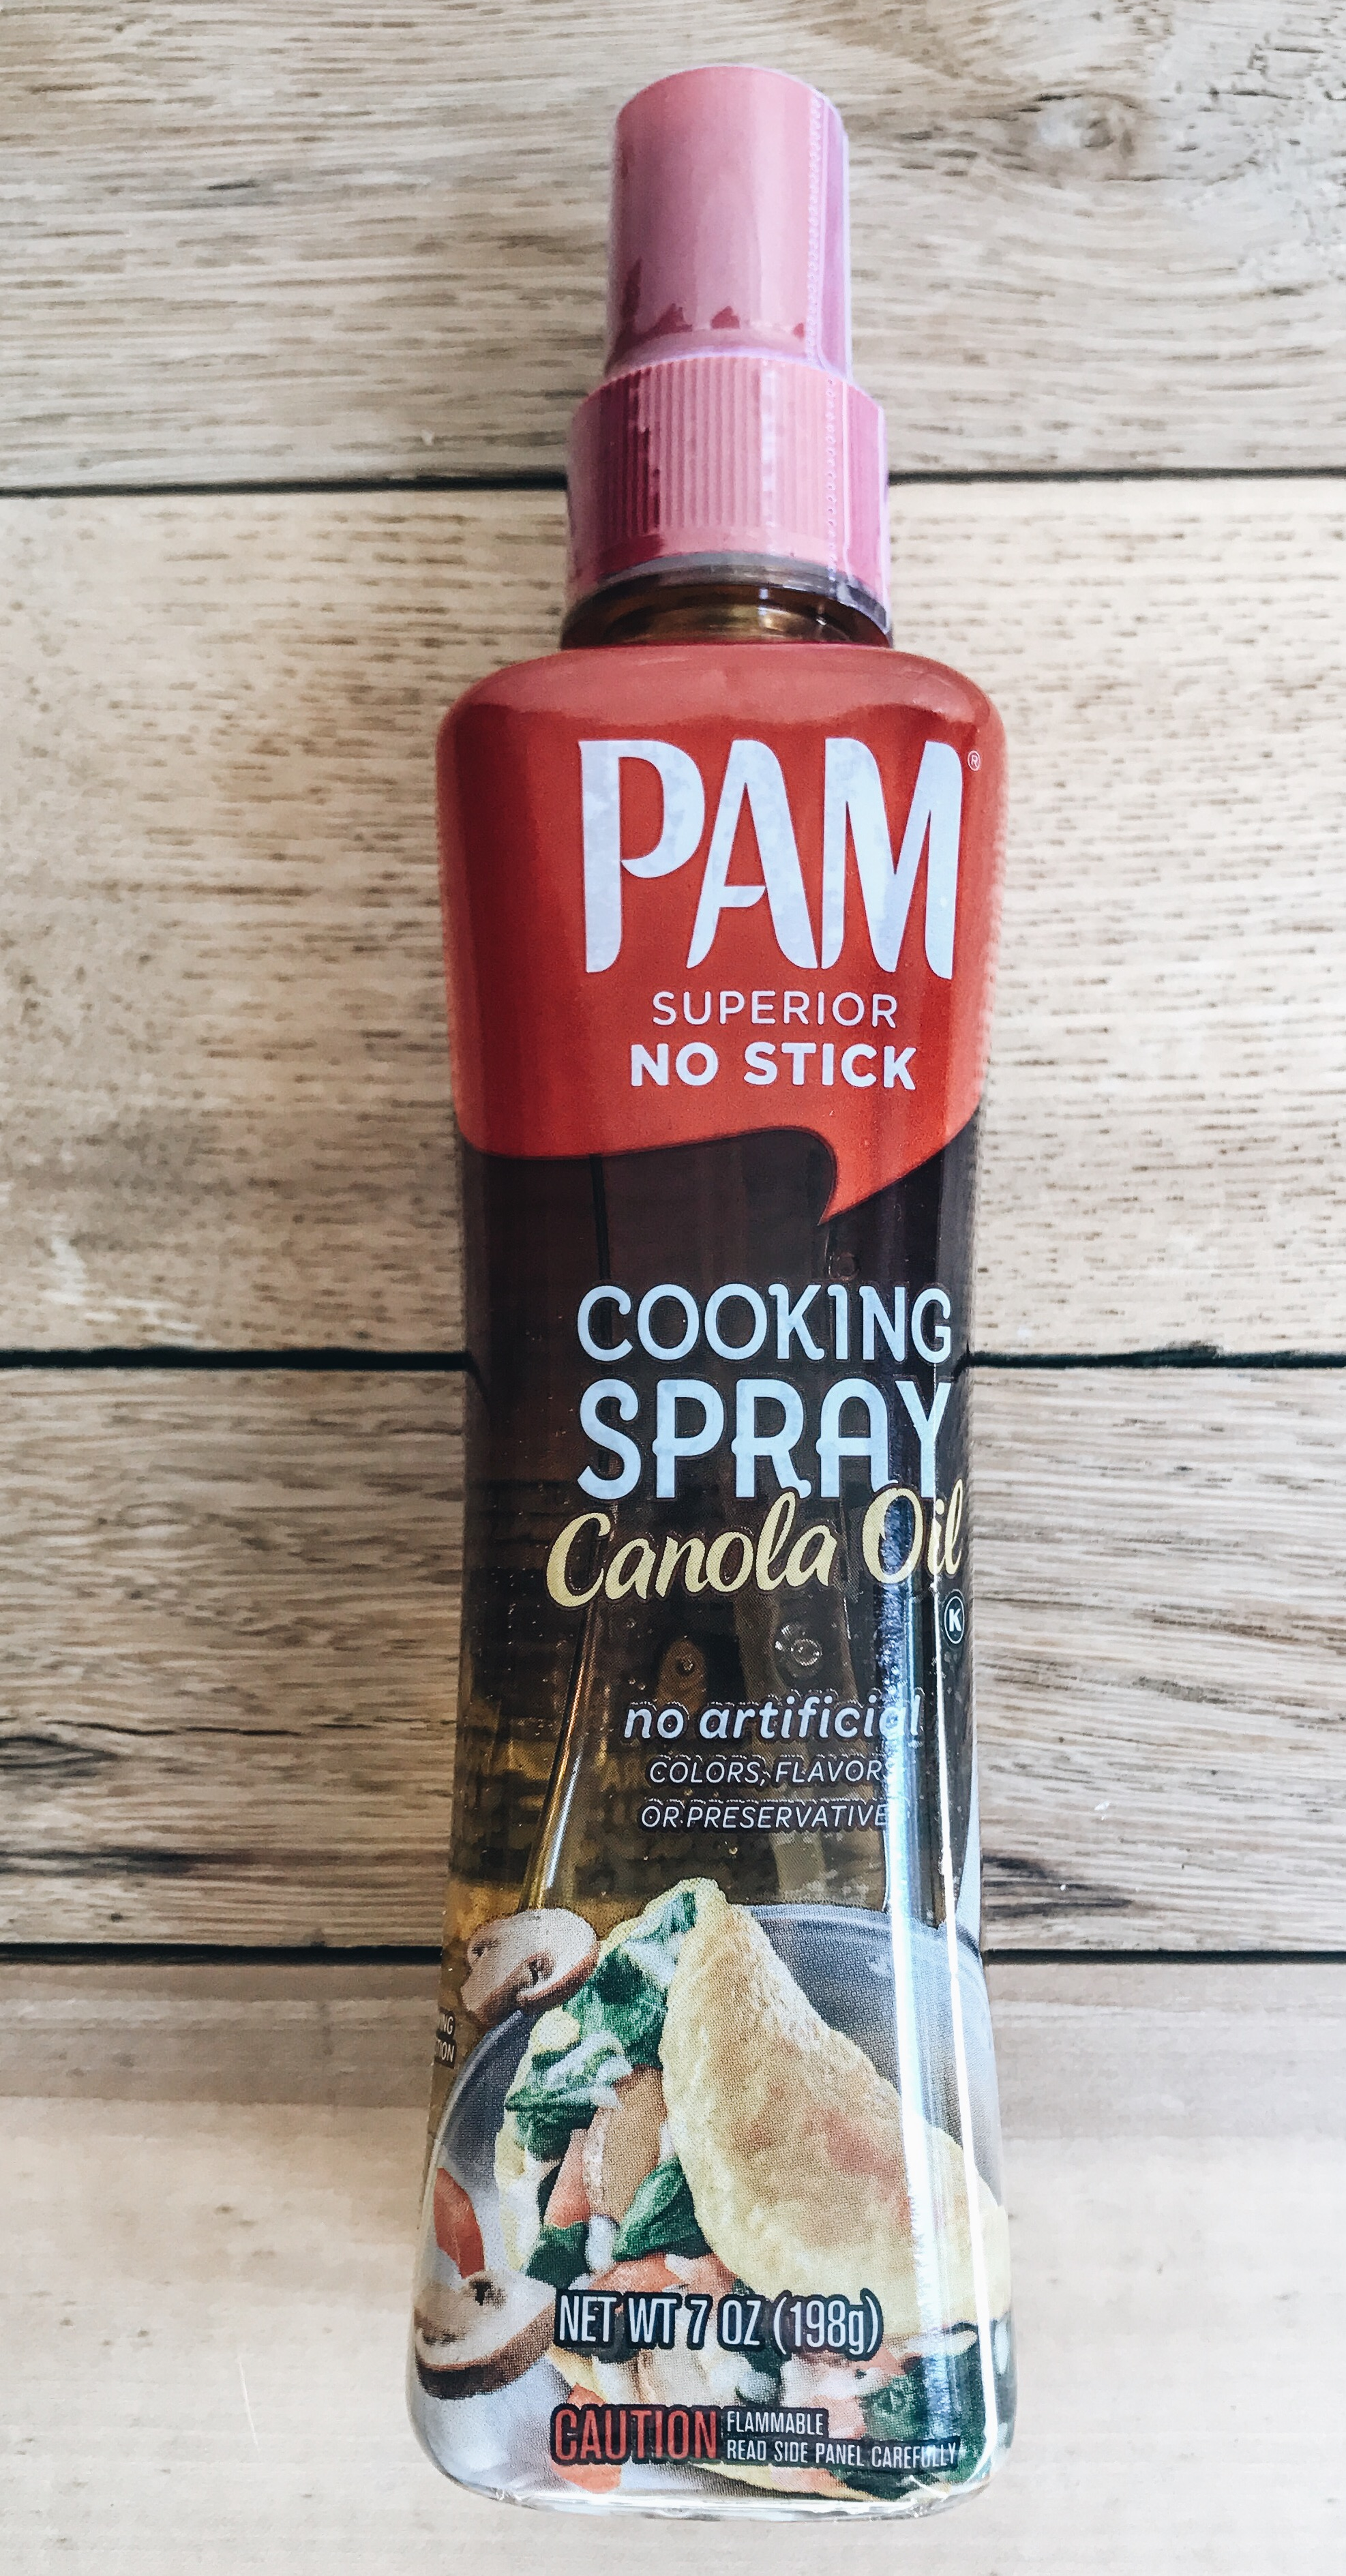 Pam Cook Spray - Outdoor Eats And Entertainment